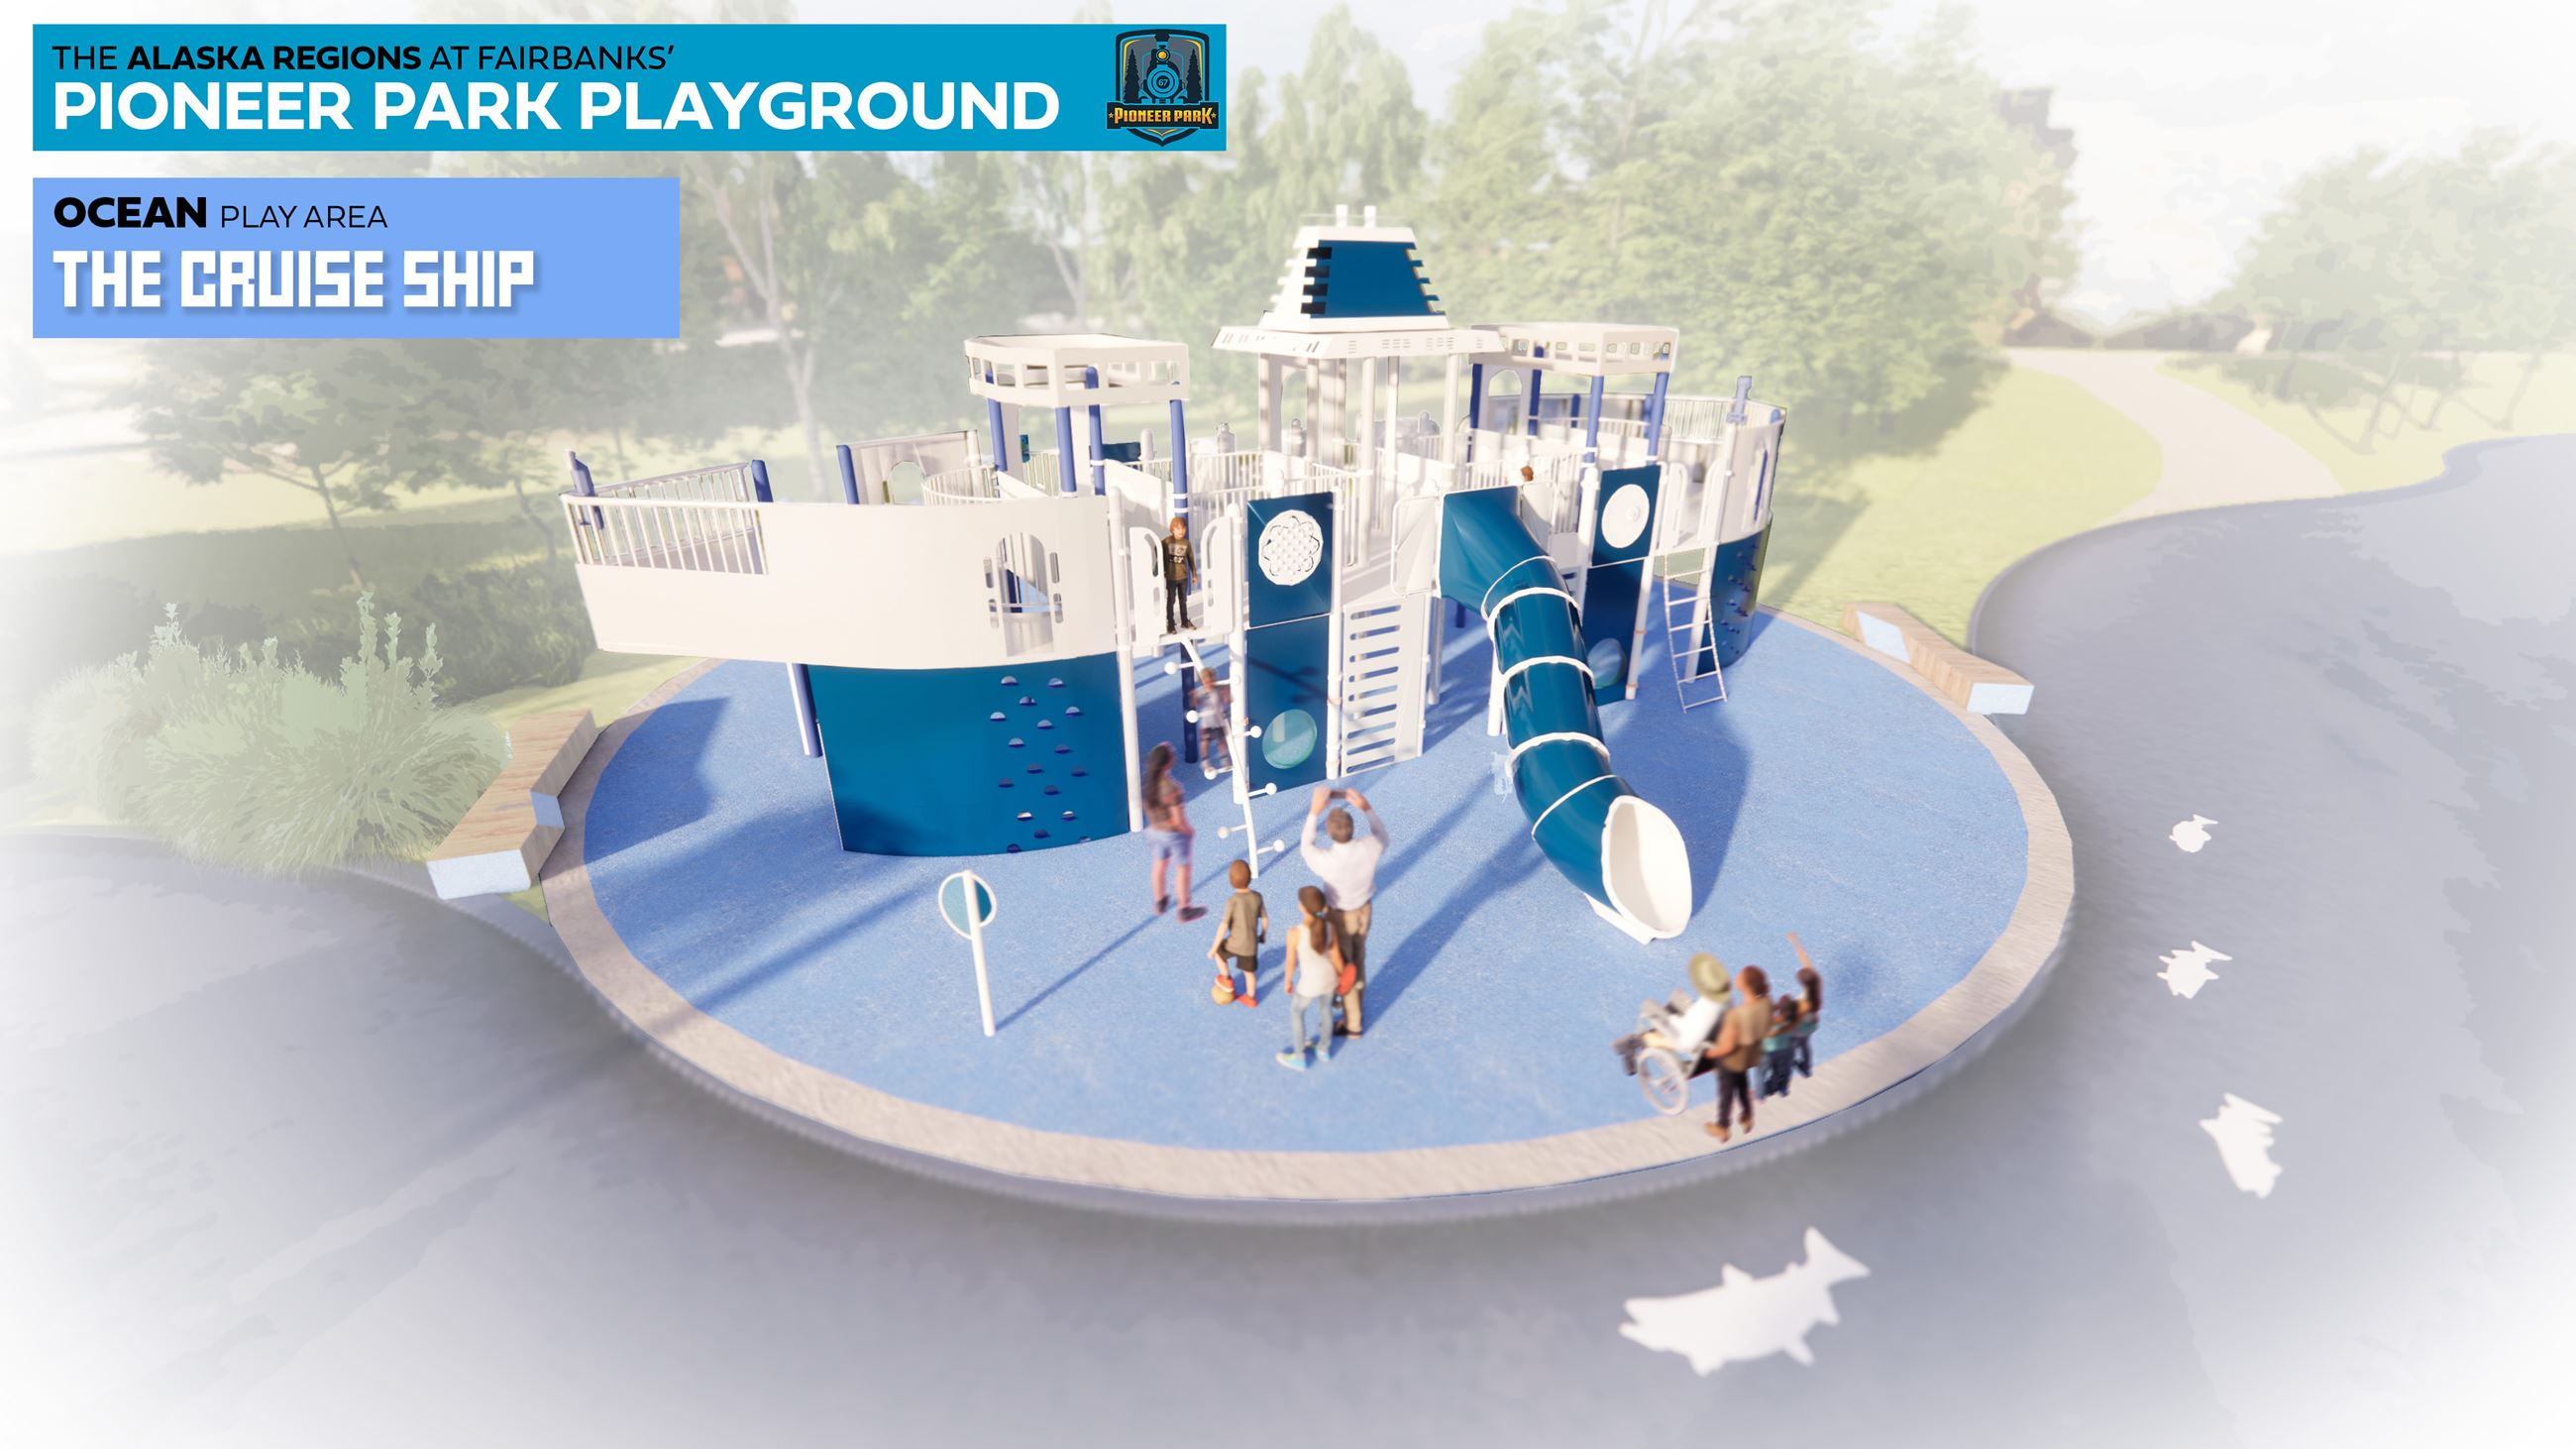 Pioneer Park Playground_EQUIP Cruise Ship_TB